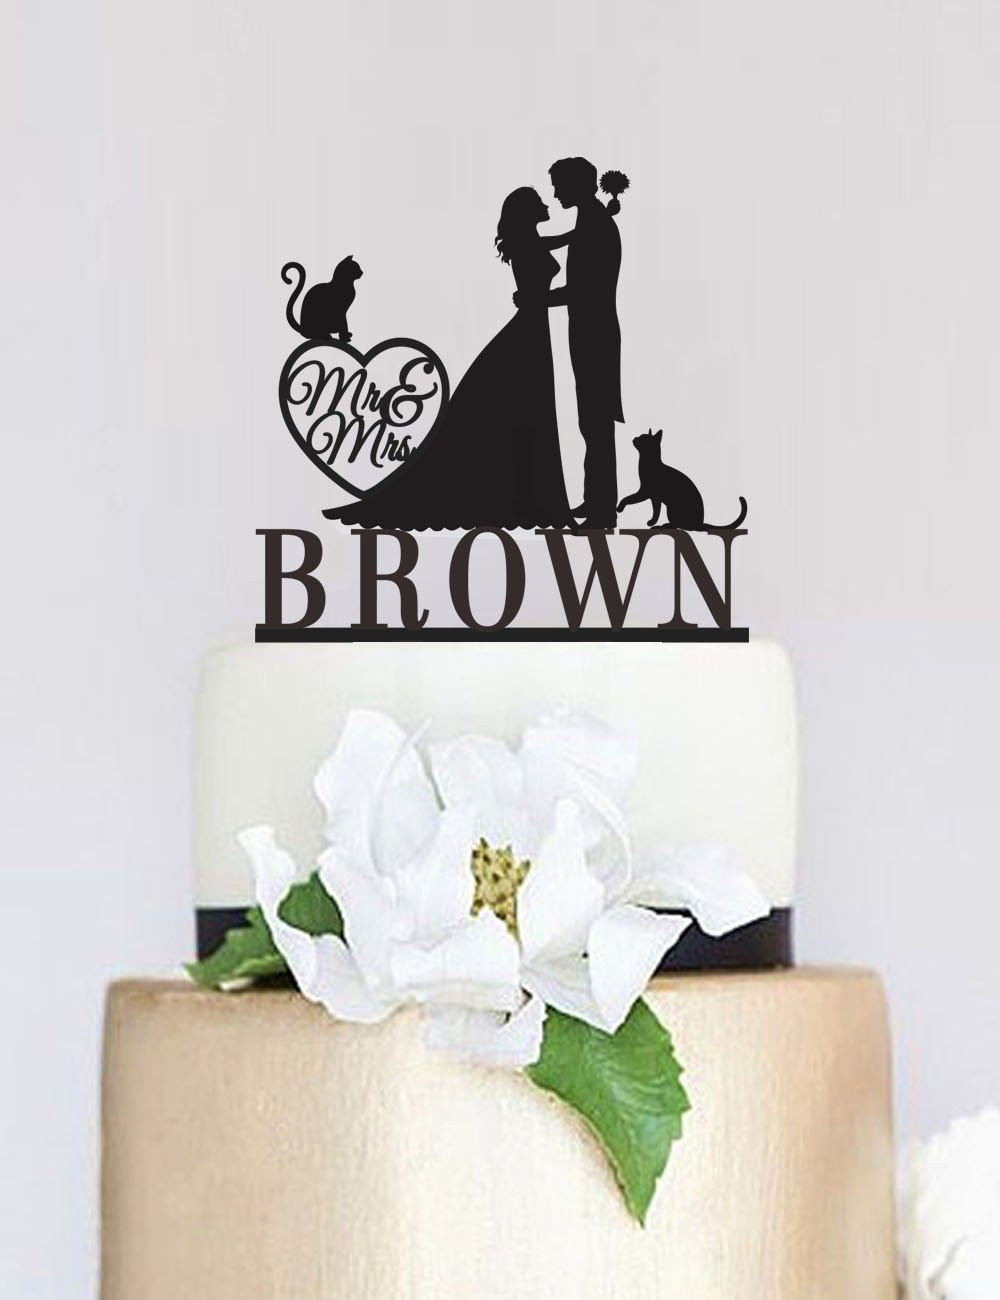 Cake Toppers For Wedding Cakes  Wedding Cake TopperMr and Mrs Cake Topper With Last